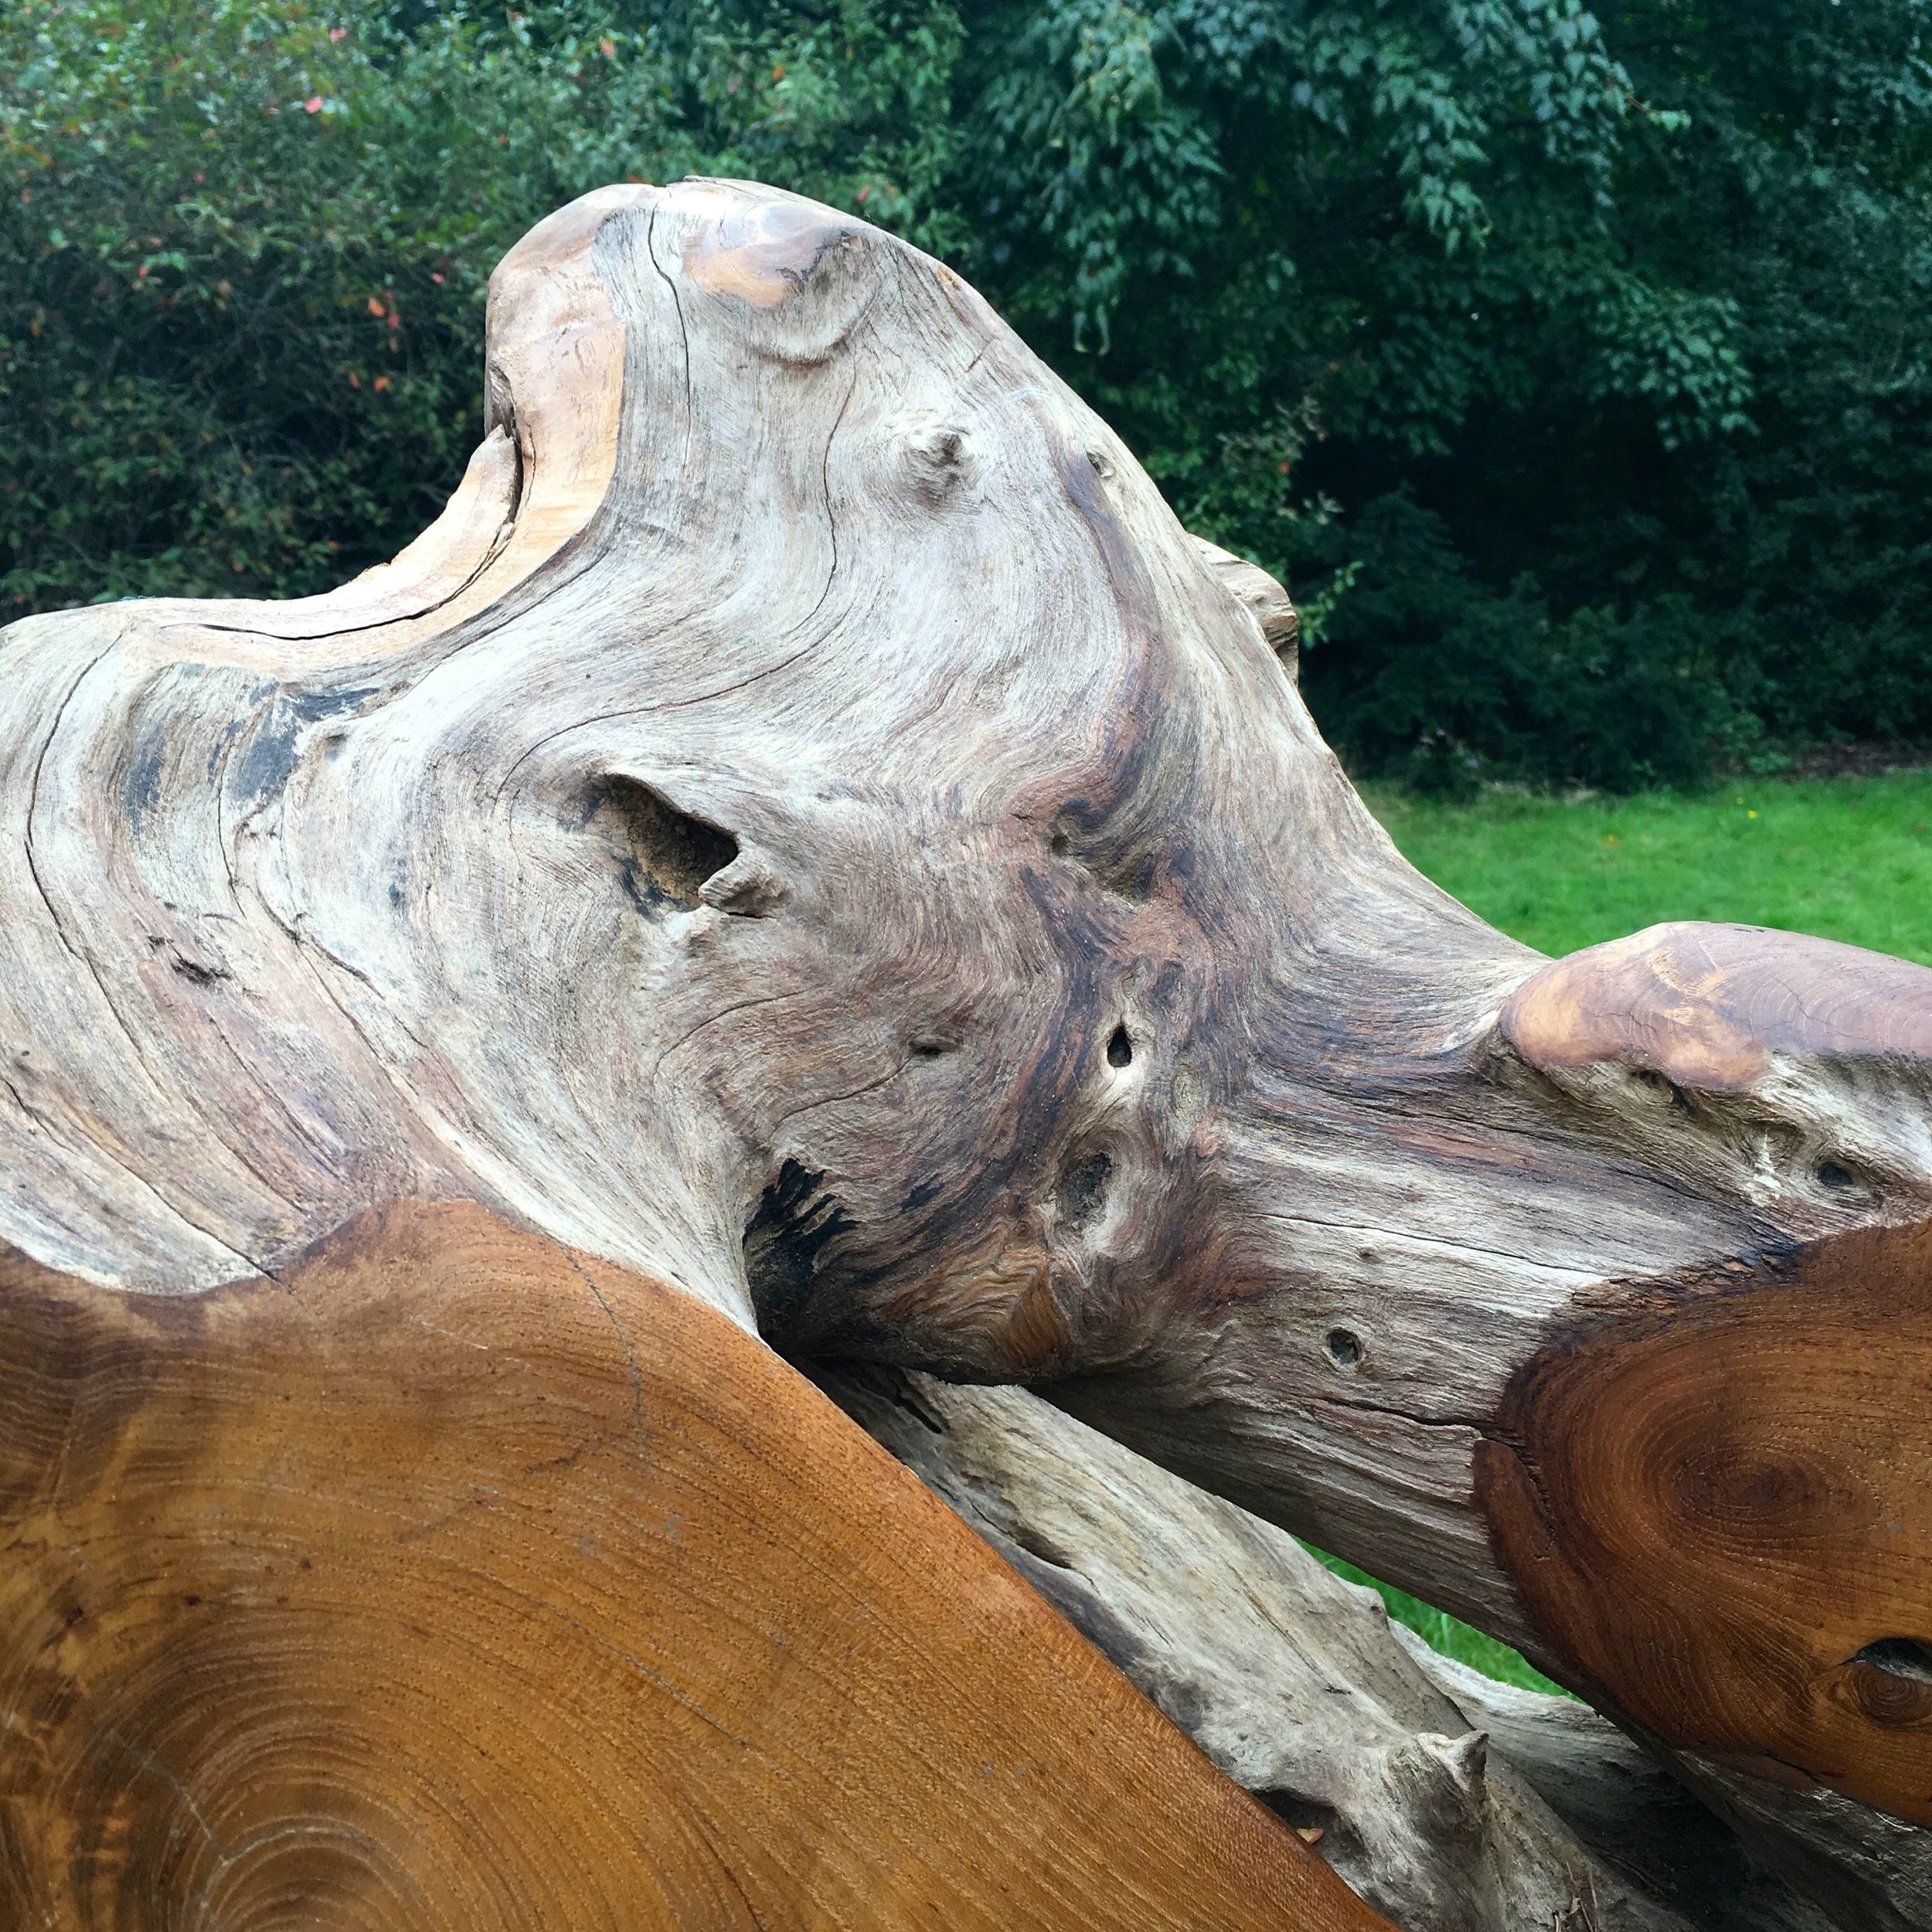 Taking a closer look at one of the teak root thrones during Woodfest at RHS Wisley